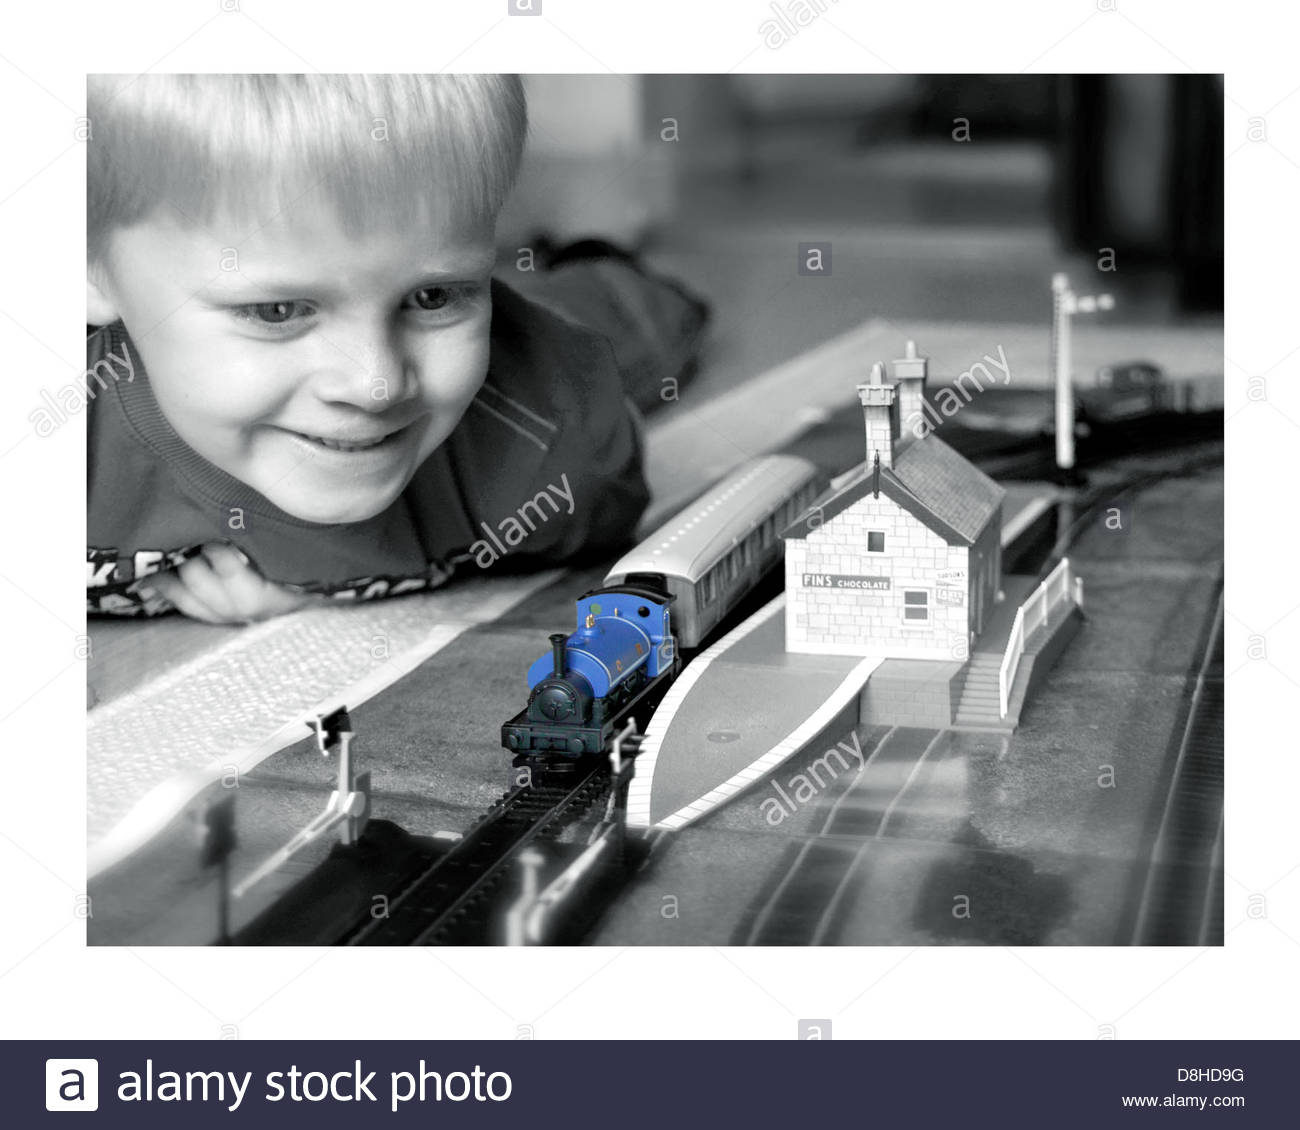 Young boy enjoying his Hornby 00 model railway and train set - Stock Image